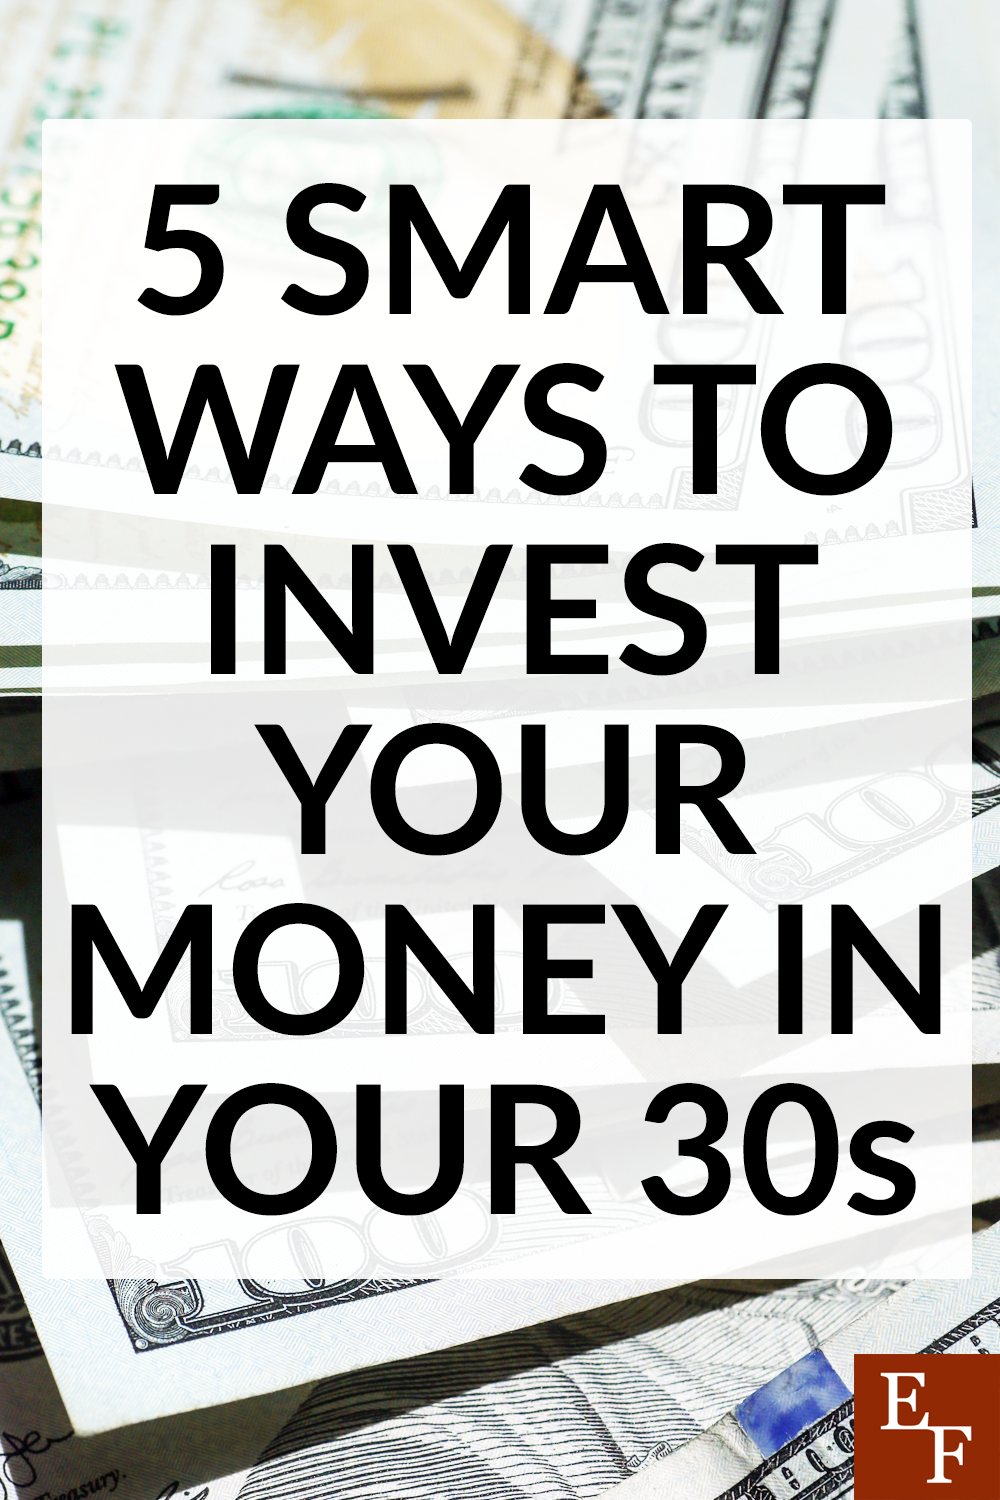 30's are a time to learn from your mistakes and be smarter with your money. Here are 5 smart ways to invest your money in your 30s.